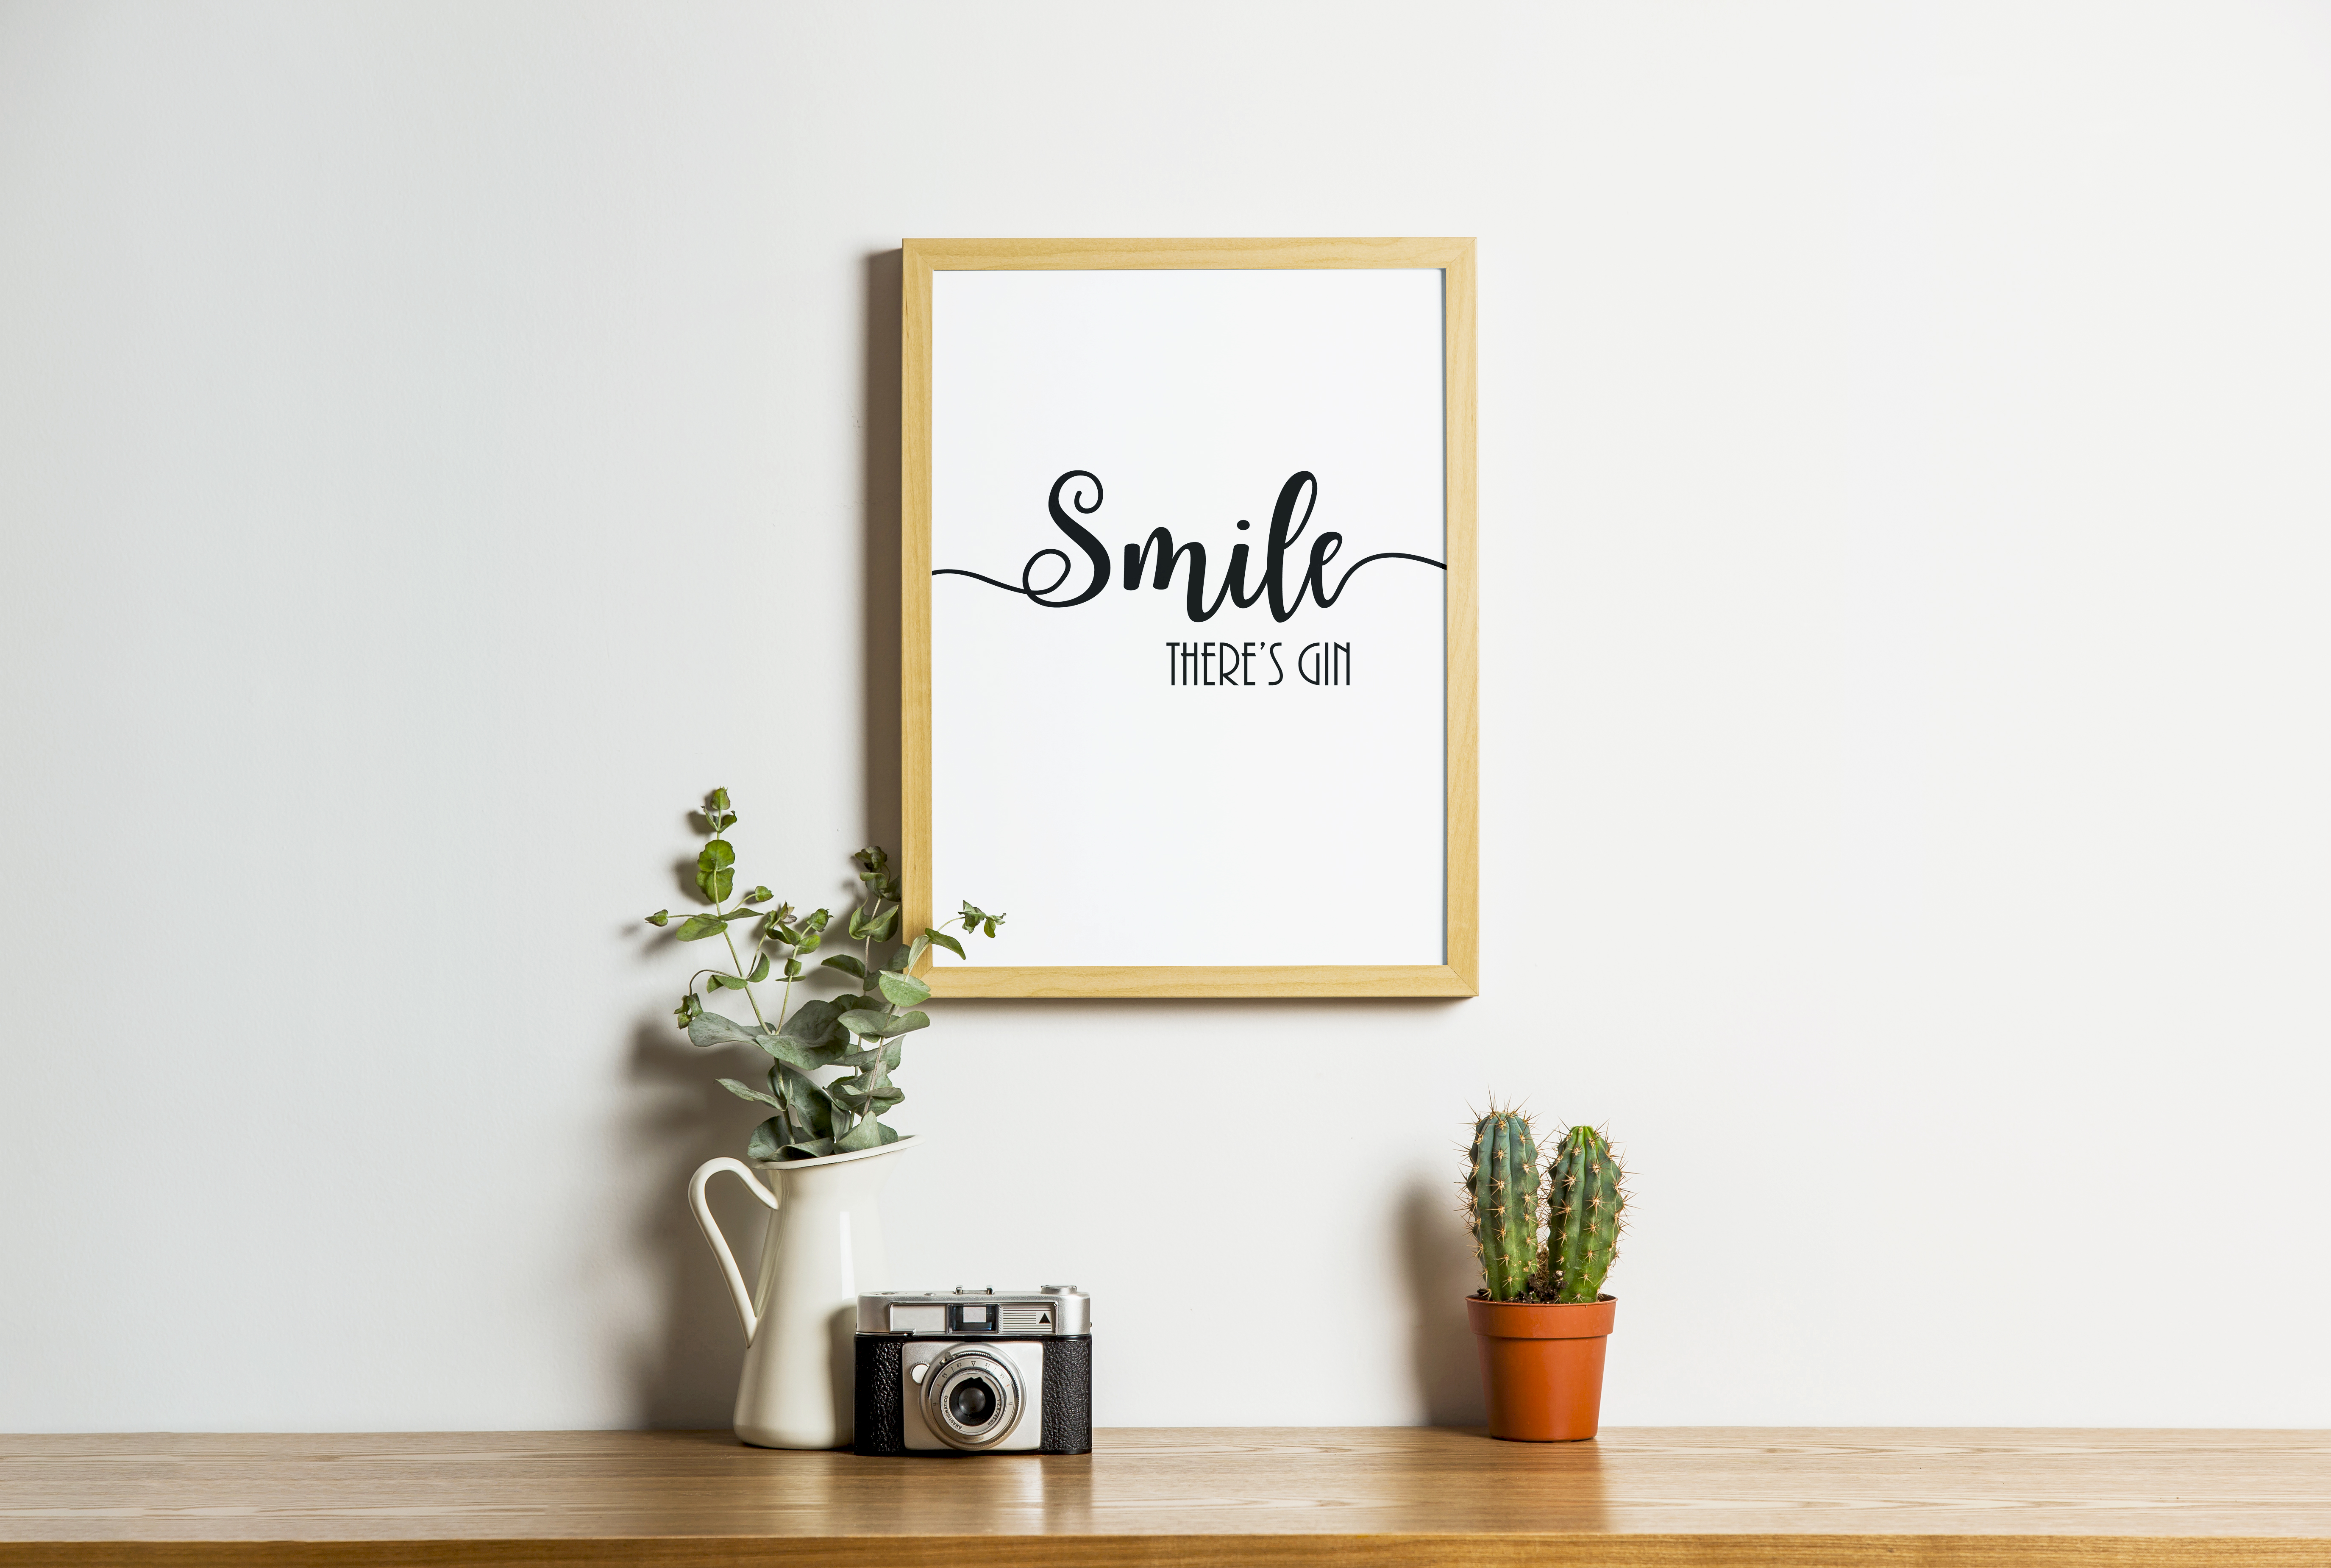 SMILE THERES GIN Funny Poster Wall Print A4 Or A3 Size Great Gift ...